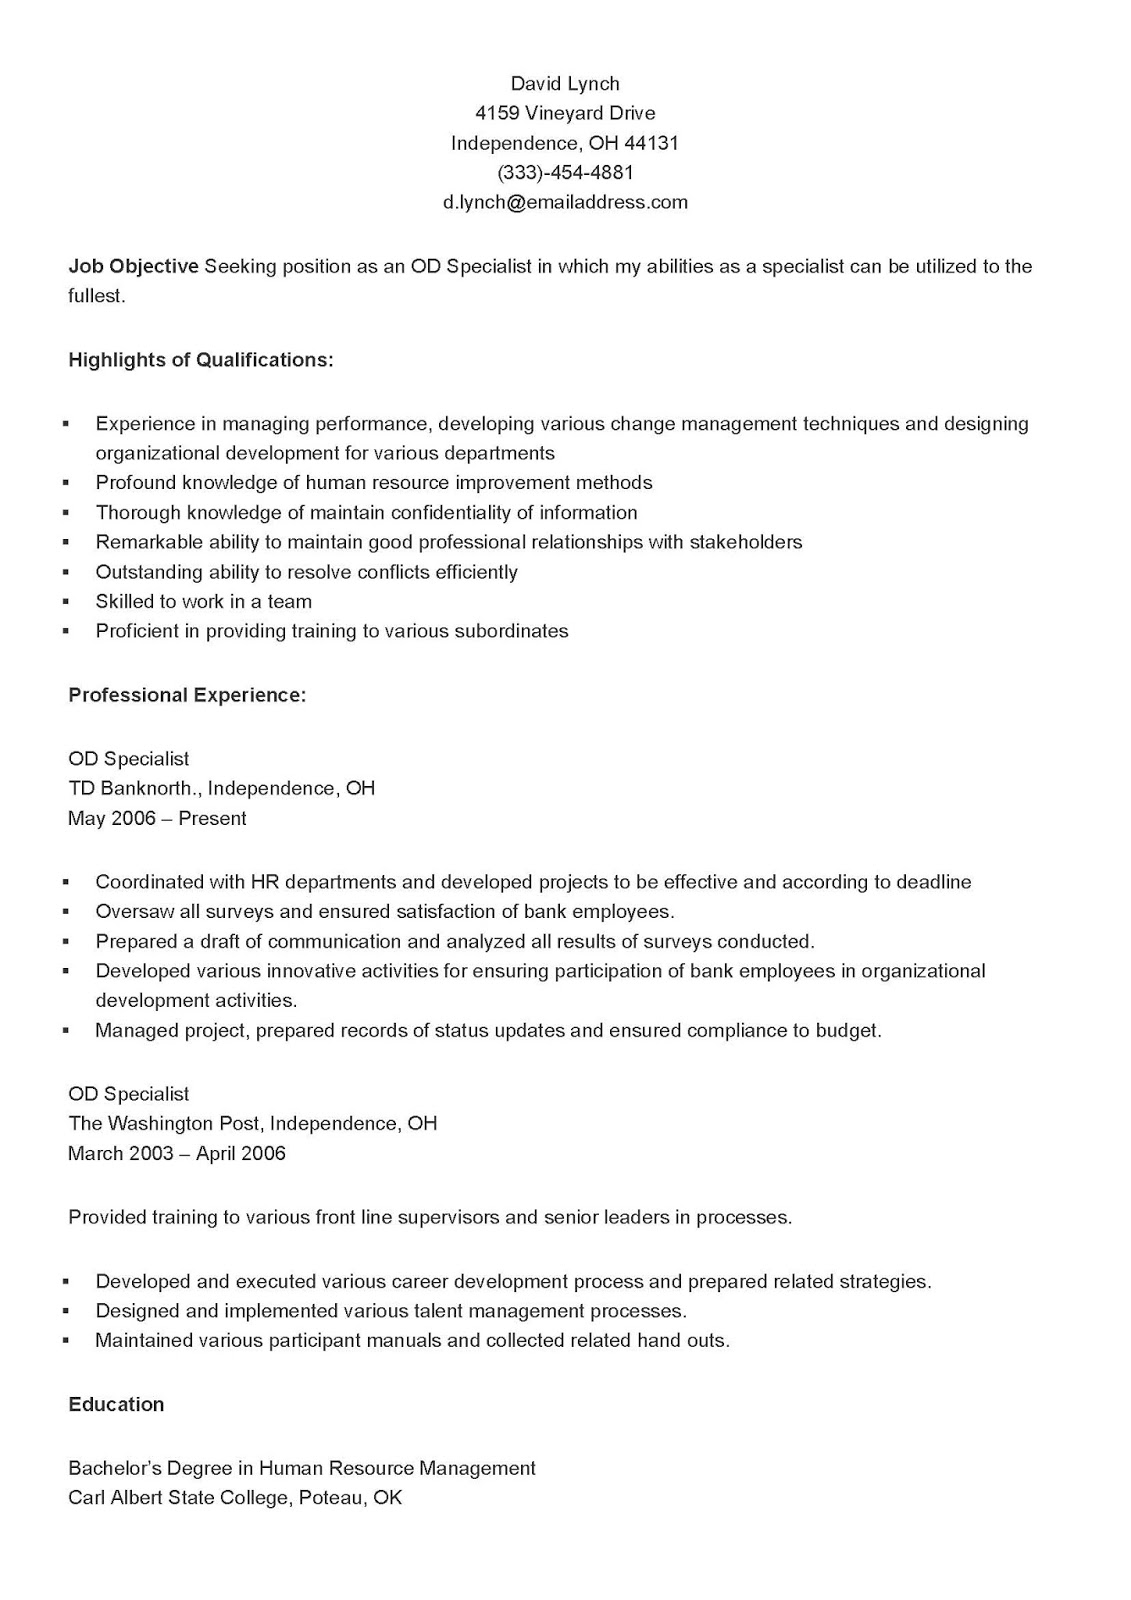 Resume Samples Sample OD Specialist Resume